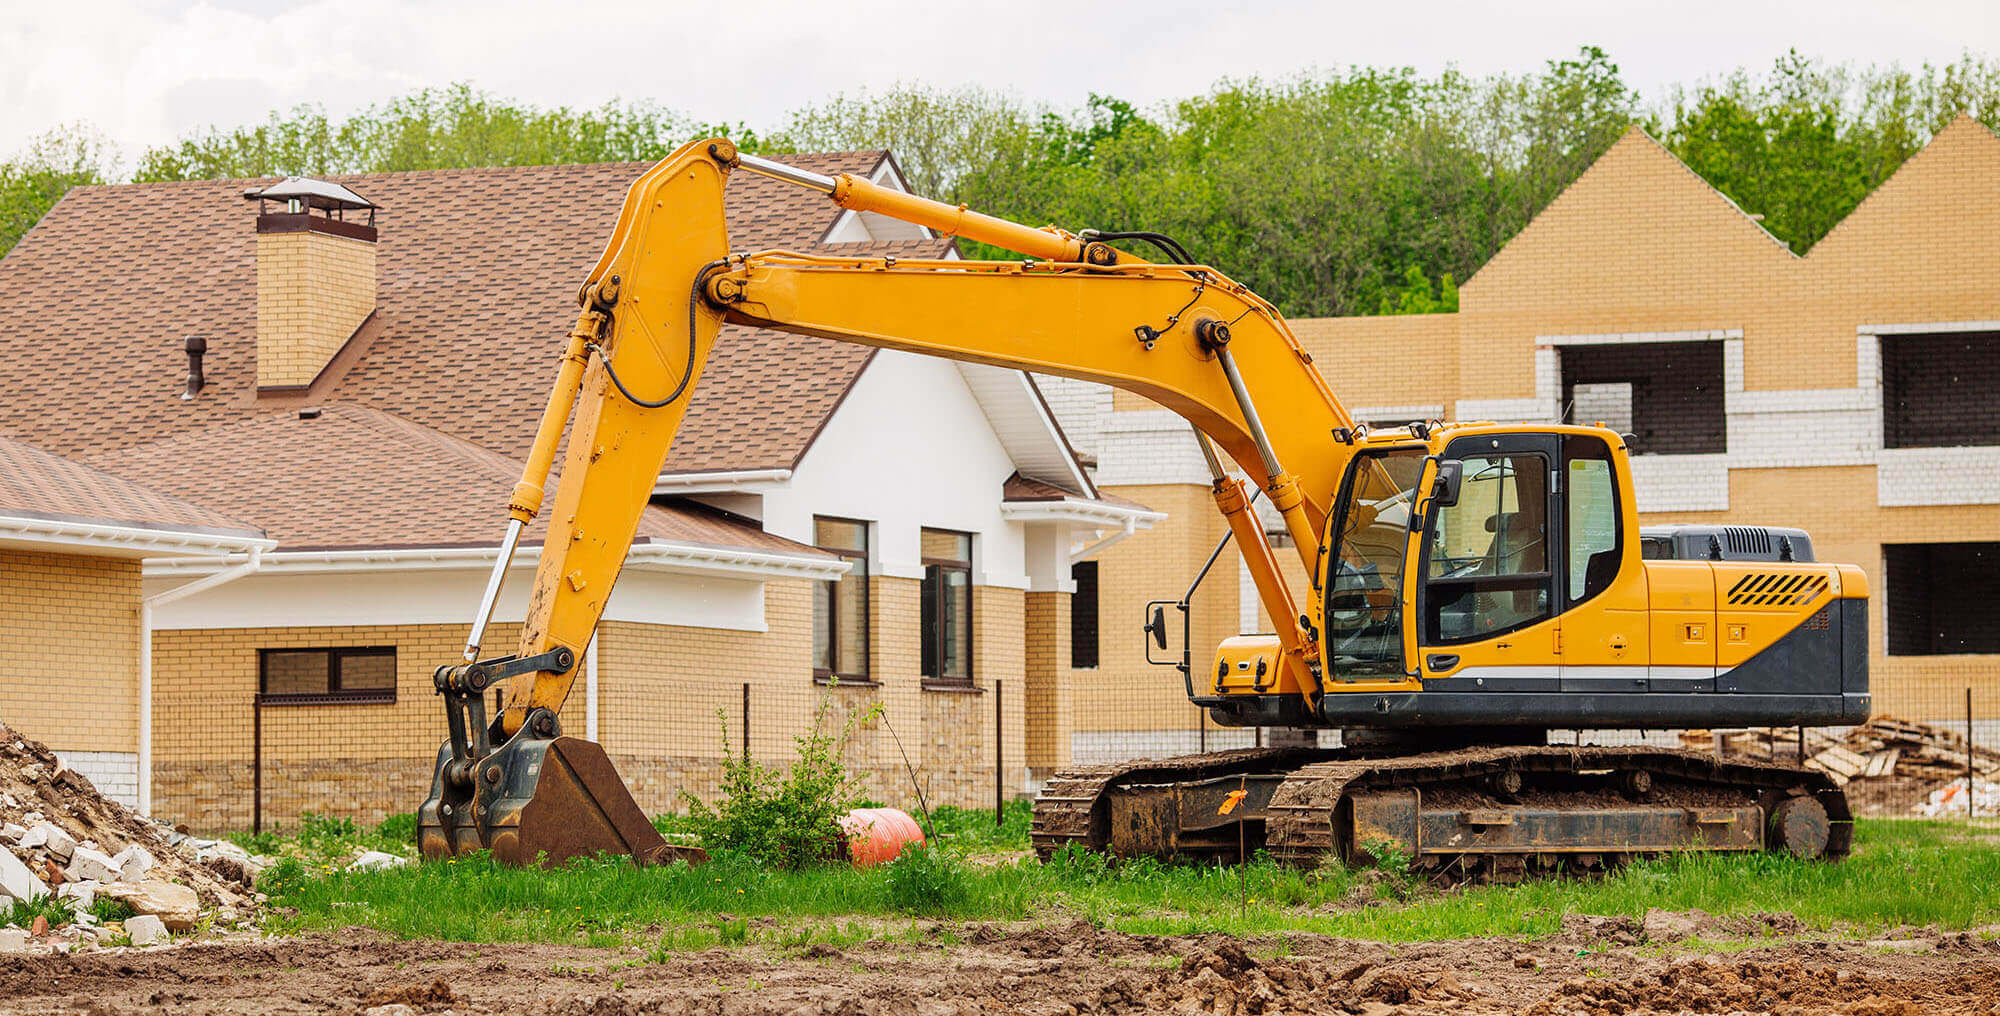 An Excavator at a Residential Work Site